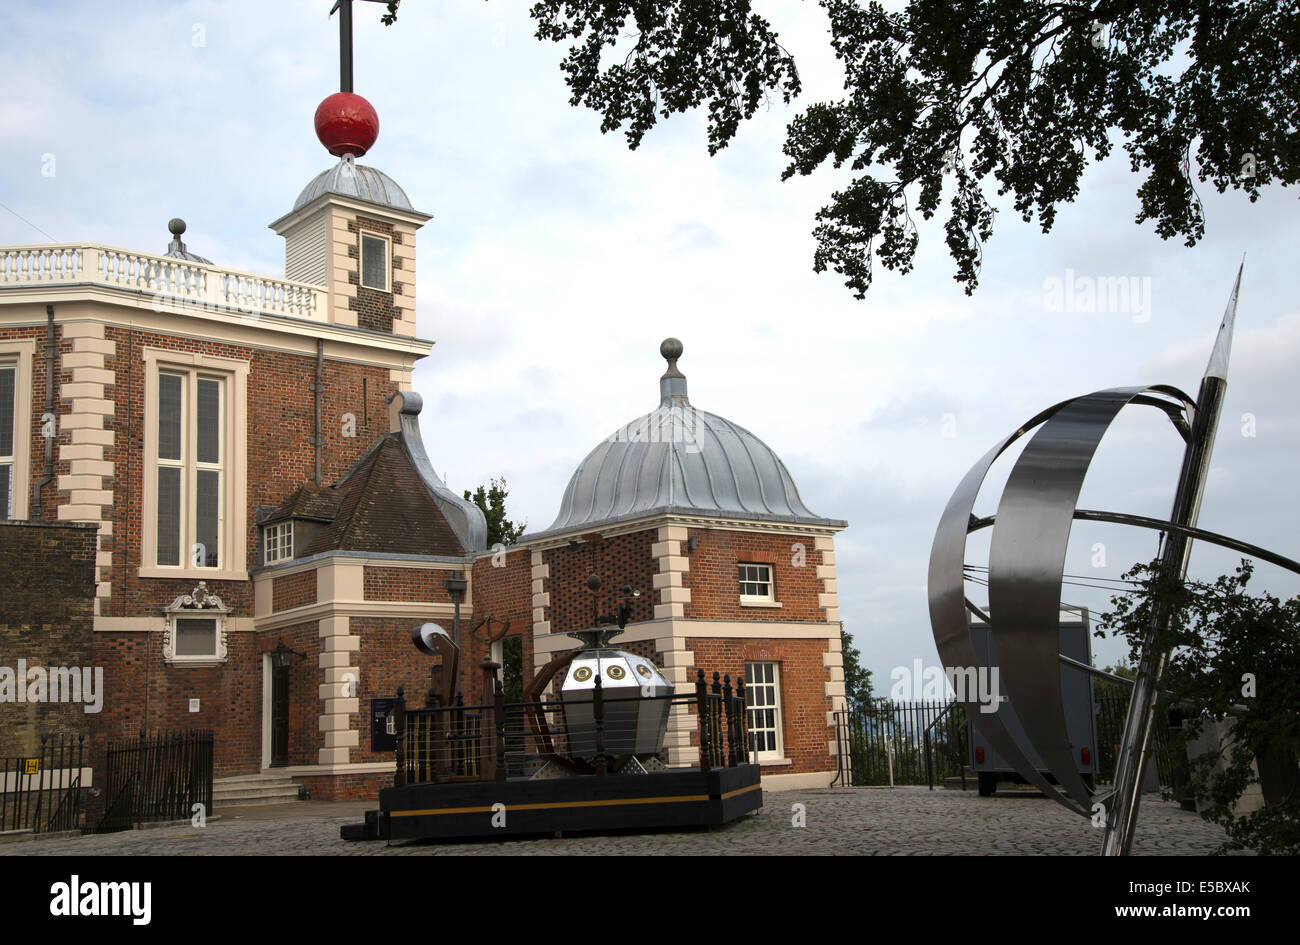 Royal Observatory in Greenwich Park, England - Stock Image